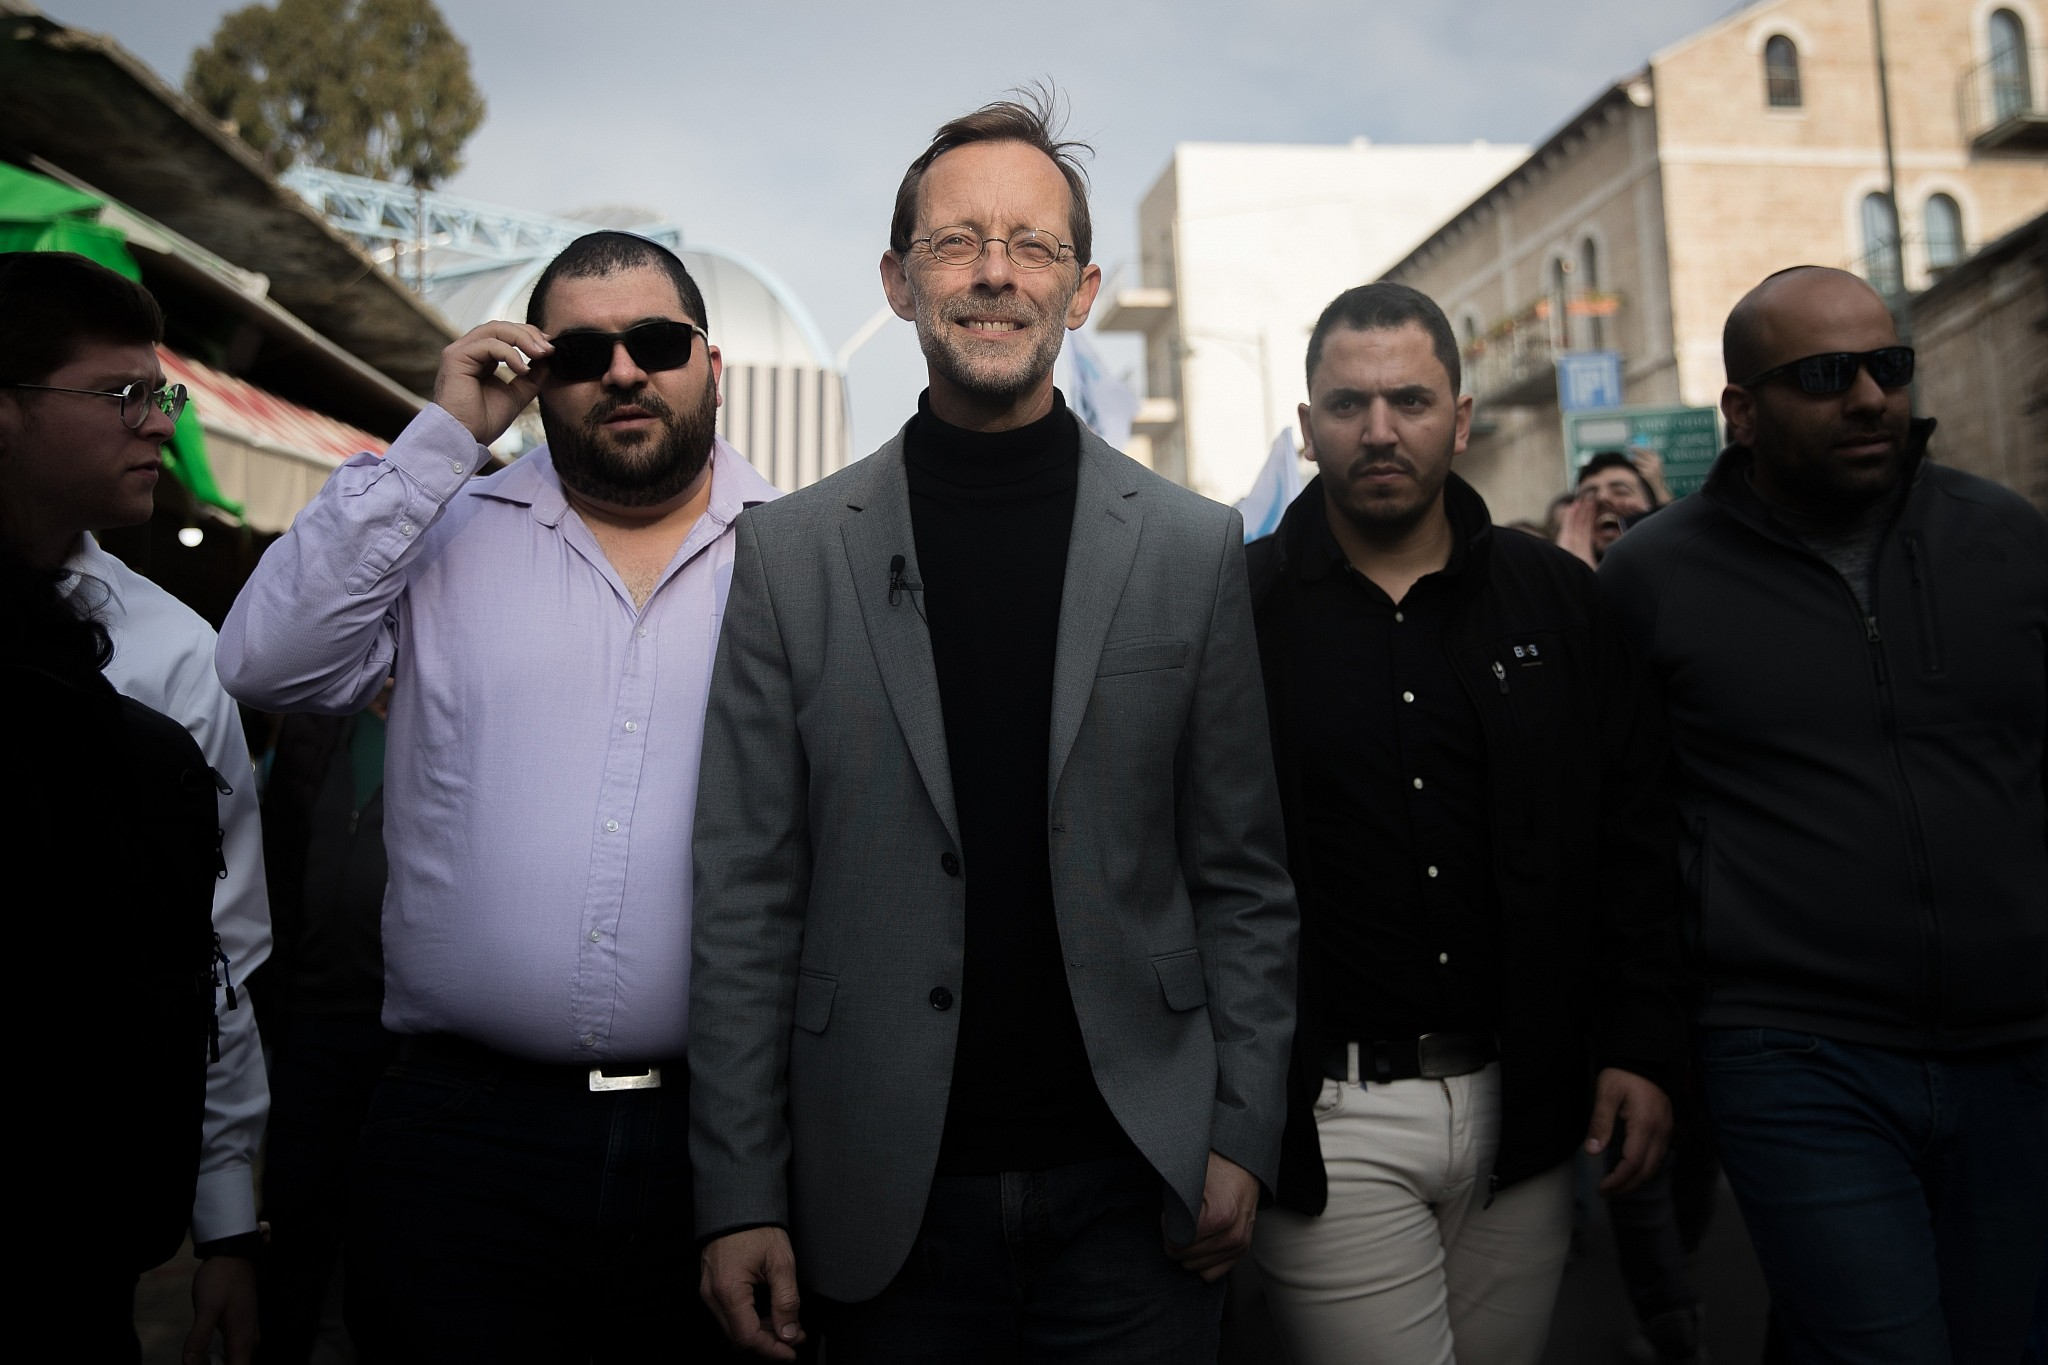 Moshe Feiglin, head of the Zehut party, during an election campaign tour in the Mahane Yehuda market in Jerusalem on April 4, 2019. (Yonatan Sindel/Flash90)